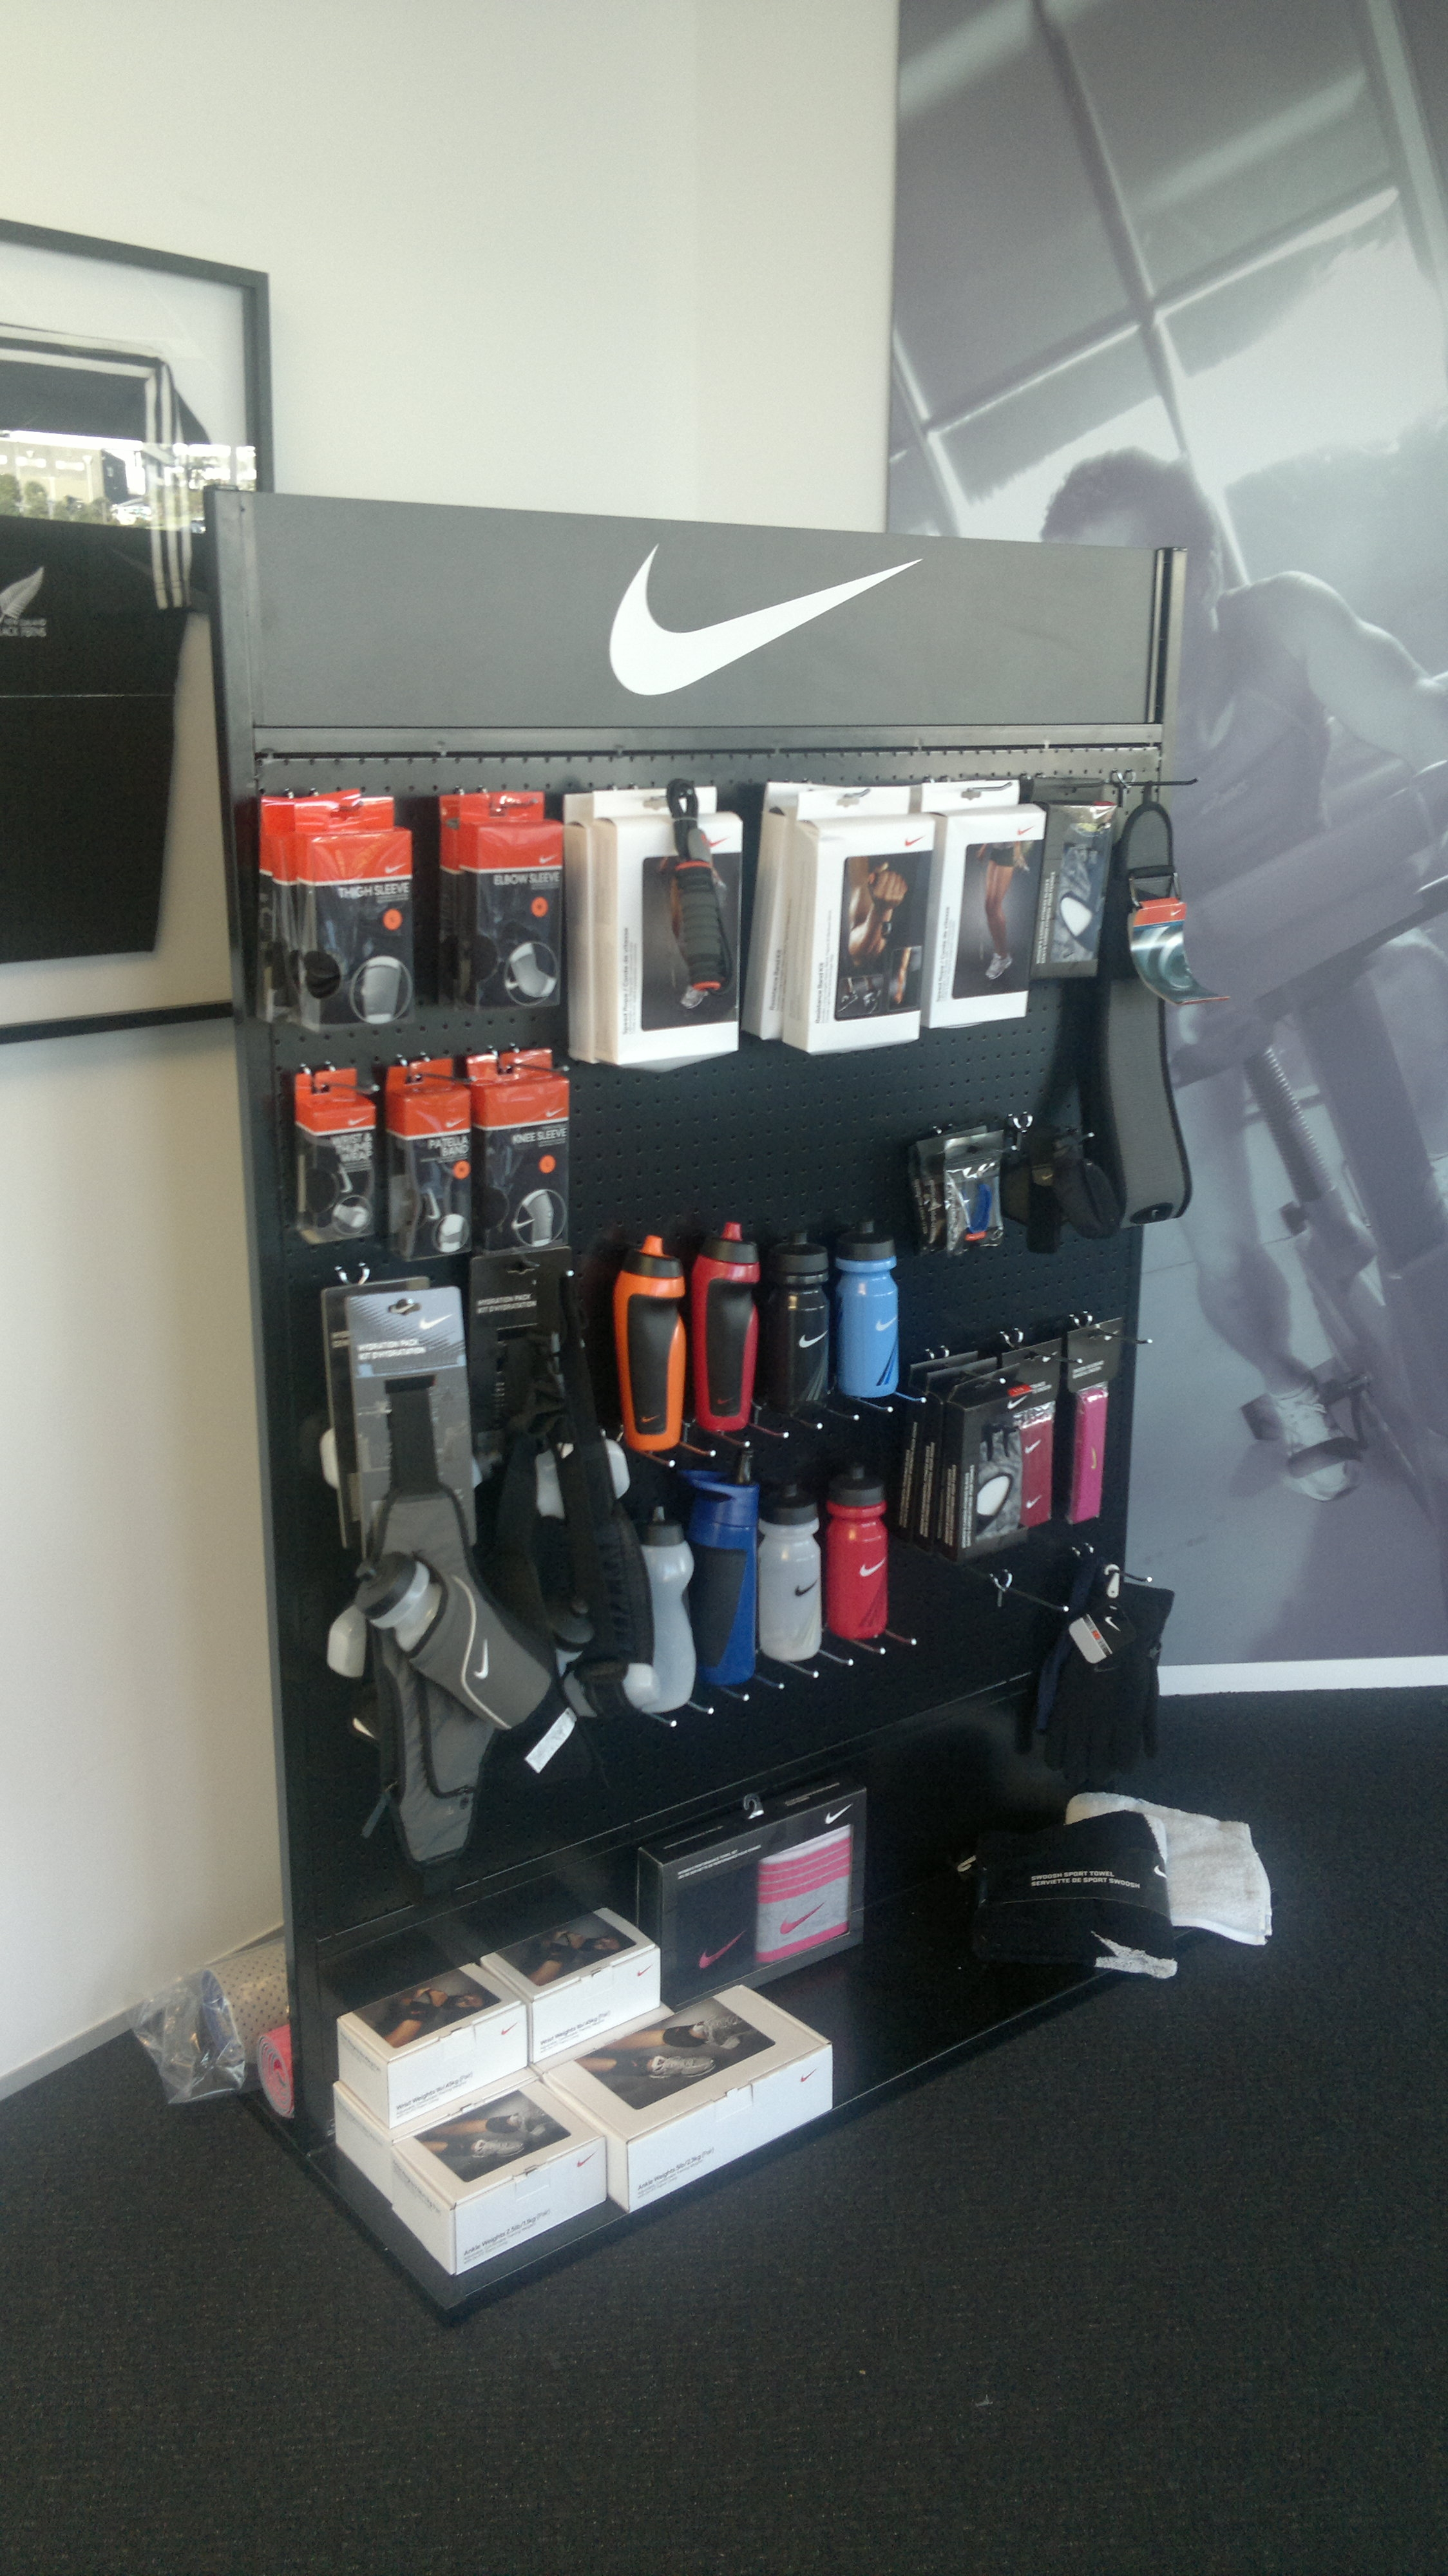 nike stands (1)